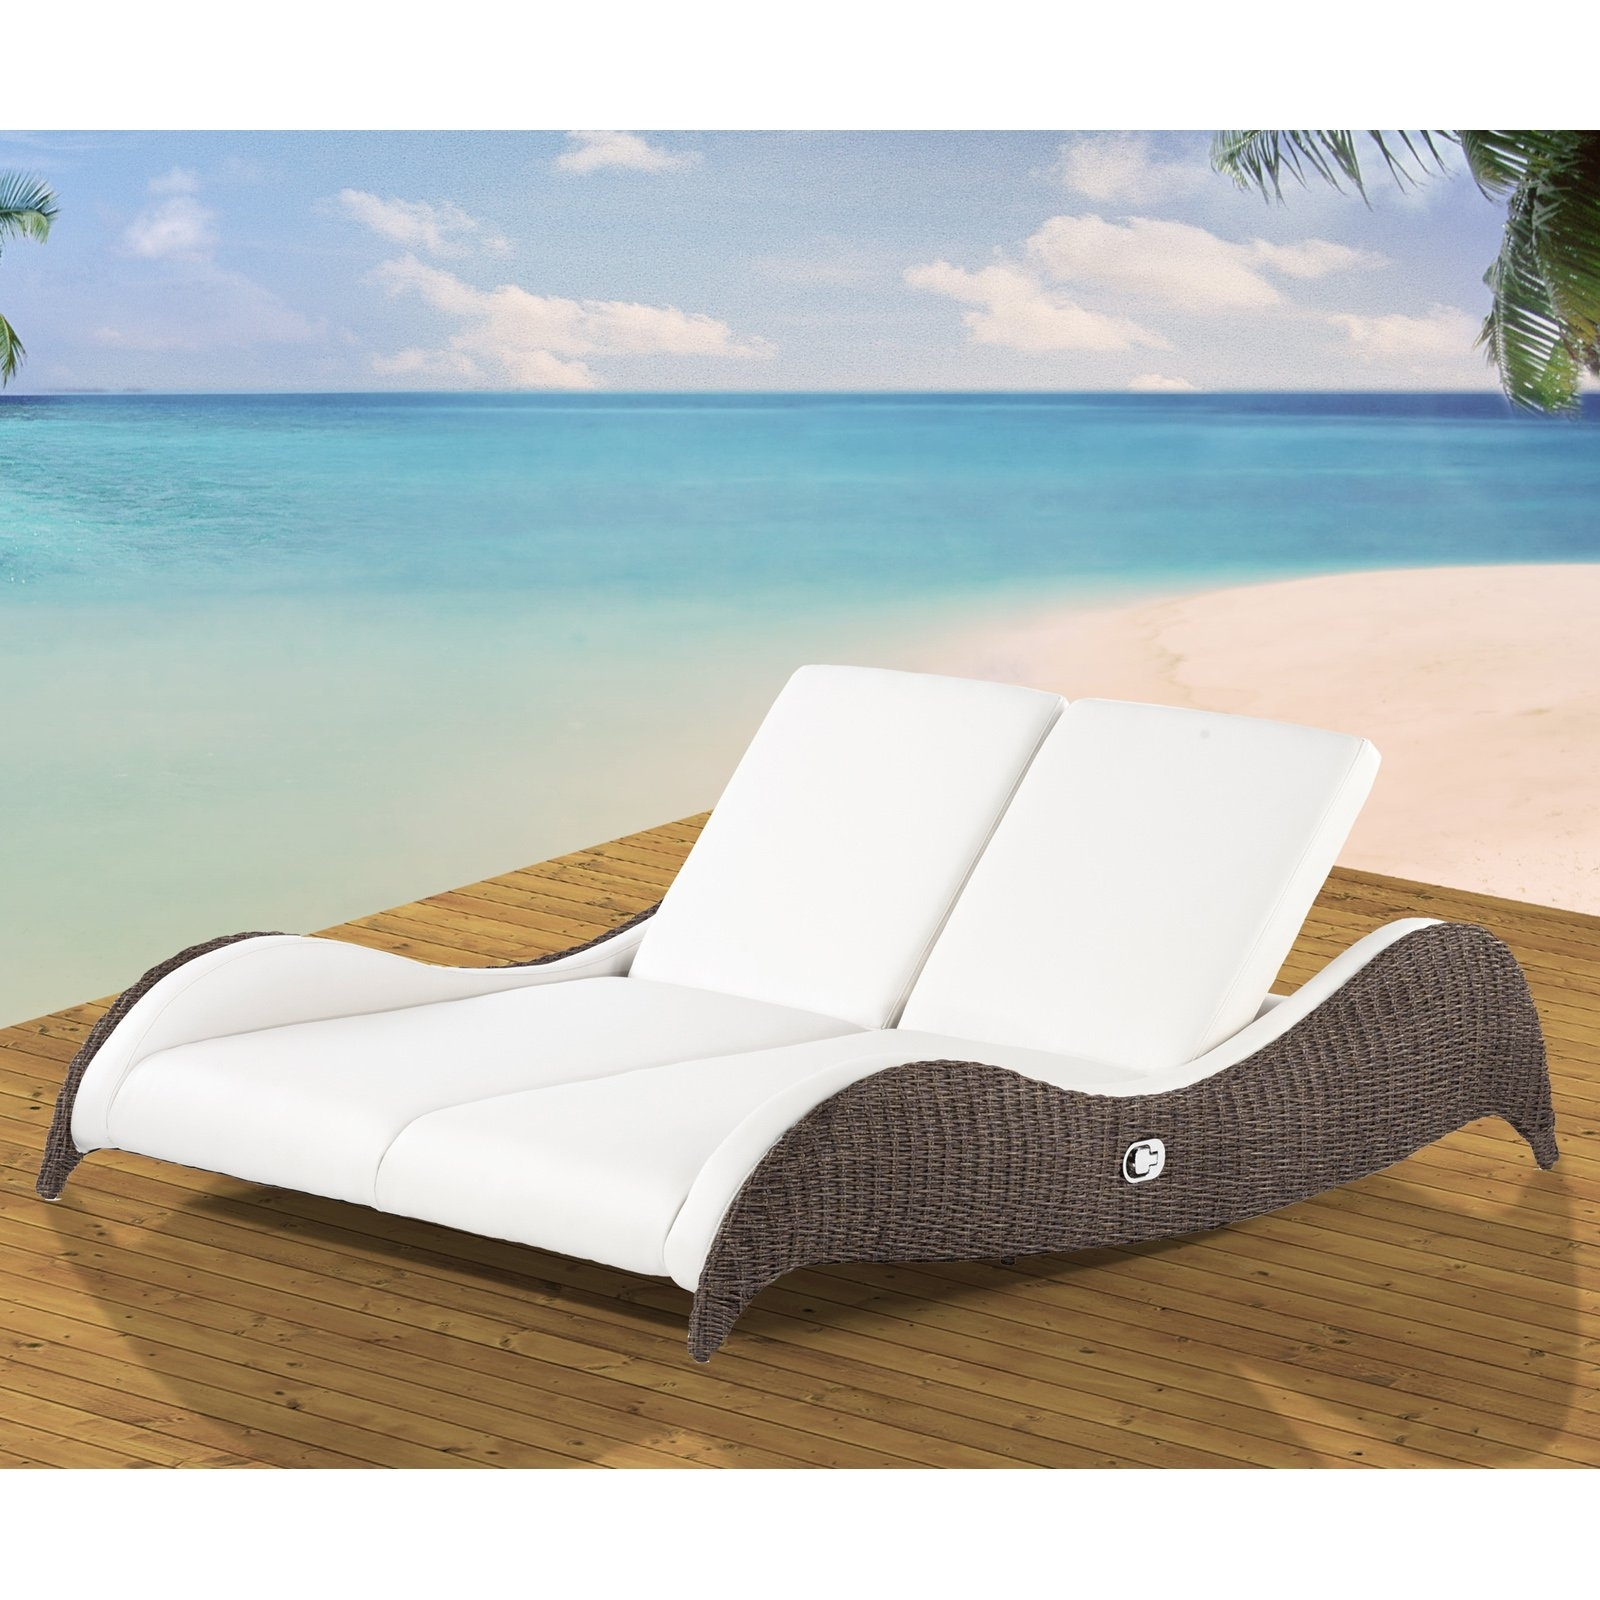 Outdoor : Plastic Lounge Chairs Lowes Outdoor Chaise Lounge Inside Most Popular Modern Outdoor Chaise Lounge Chairs (View 5 of 15)